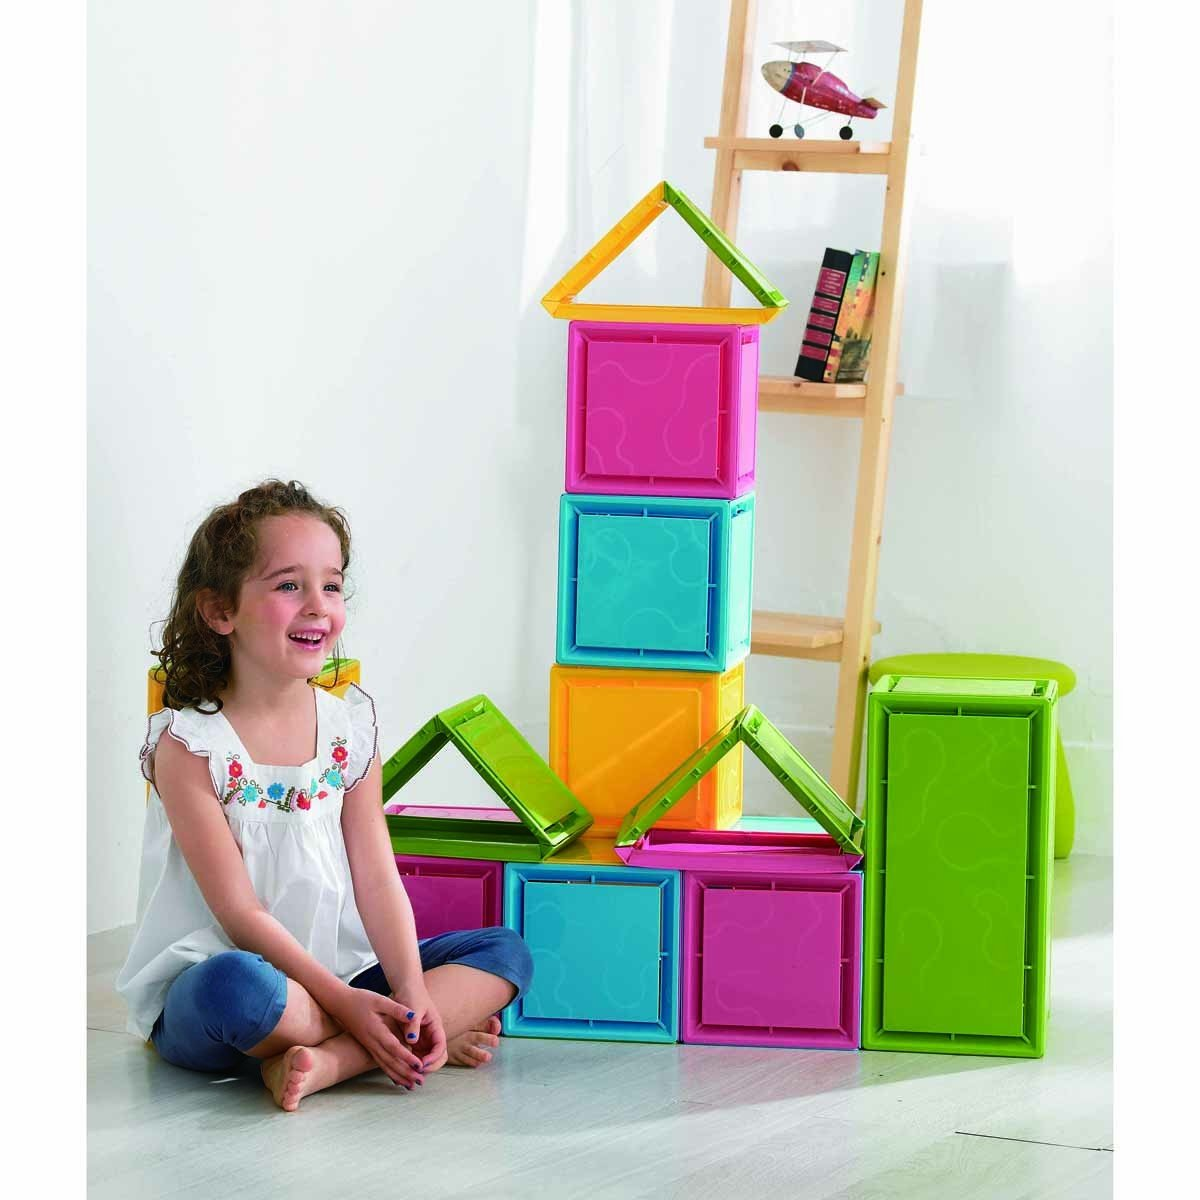 WePlay KC0003 - Stacking Blocks, 68-teilig